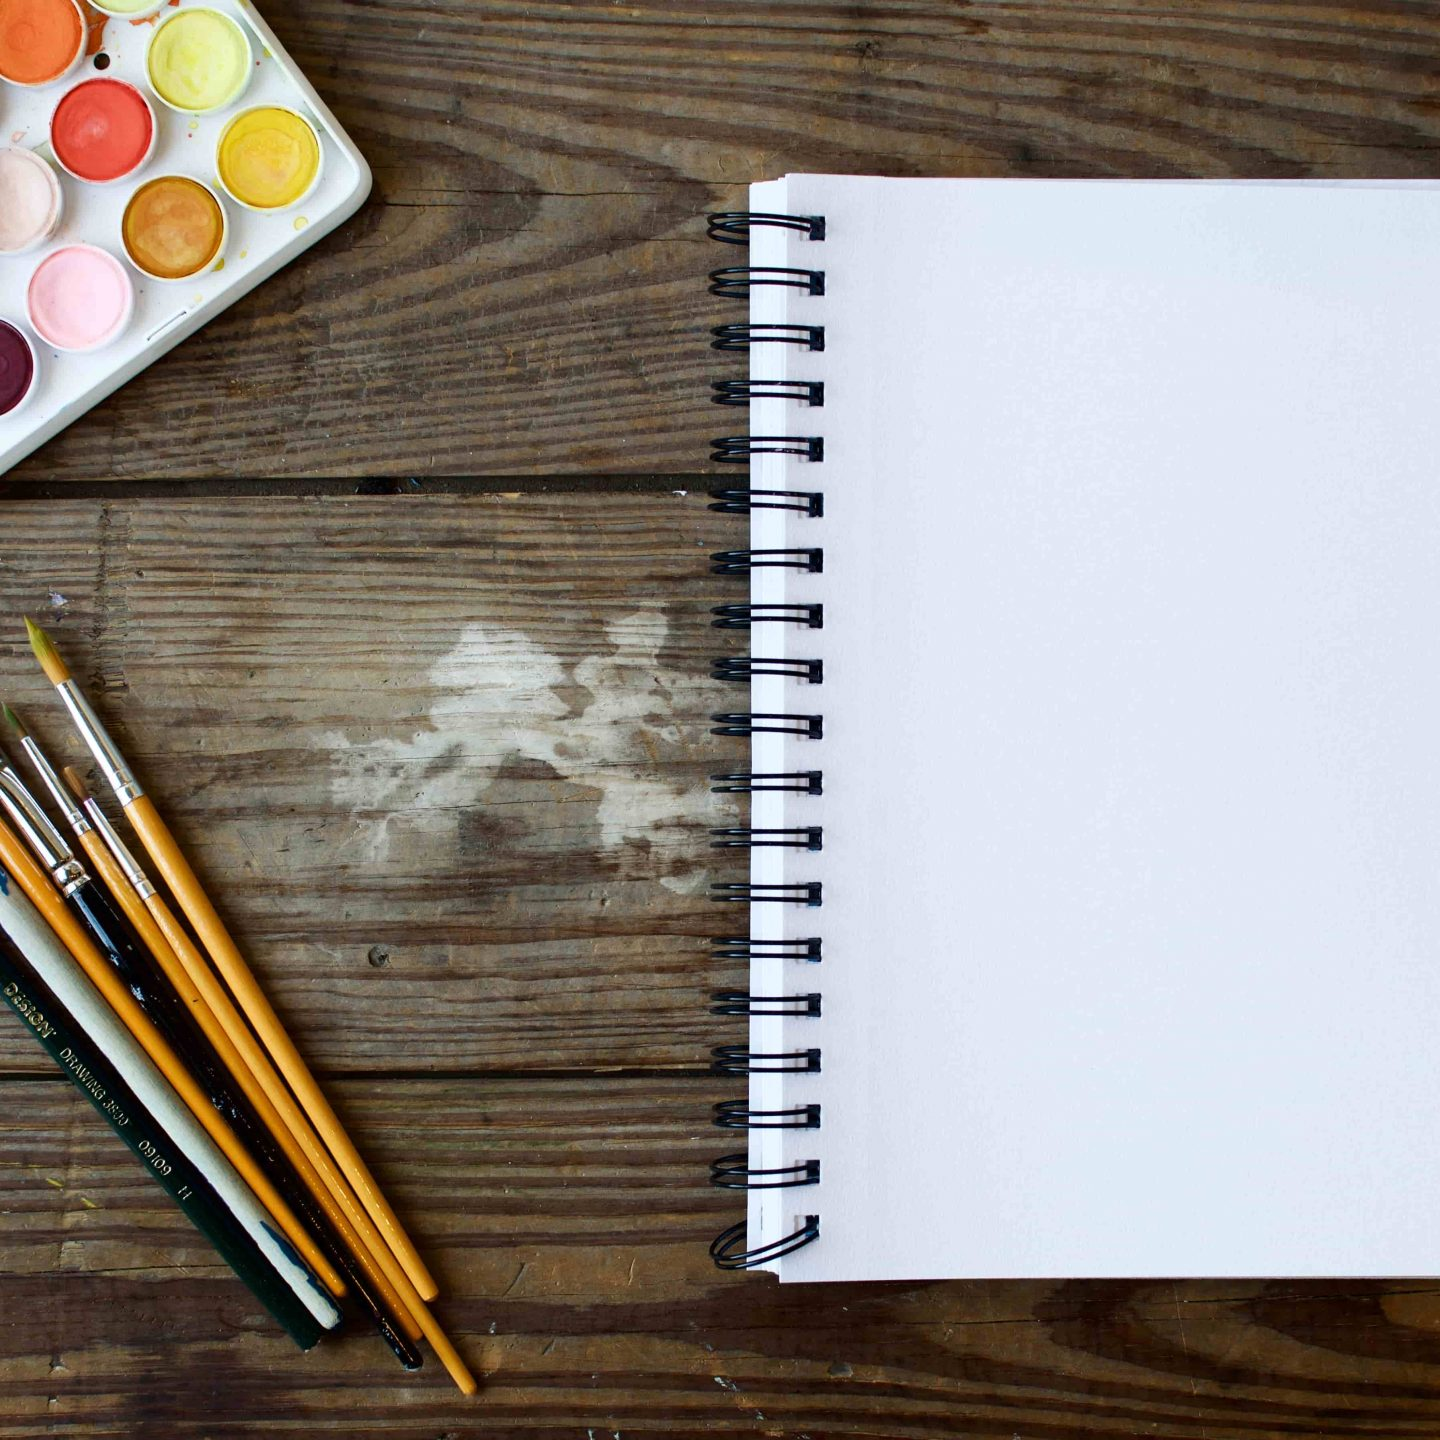 Best Watercolor Paint Sets For Beginners